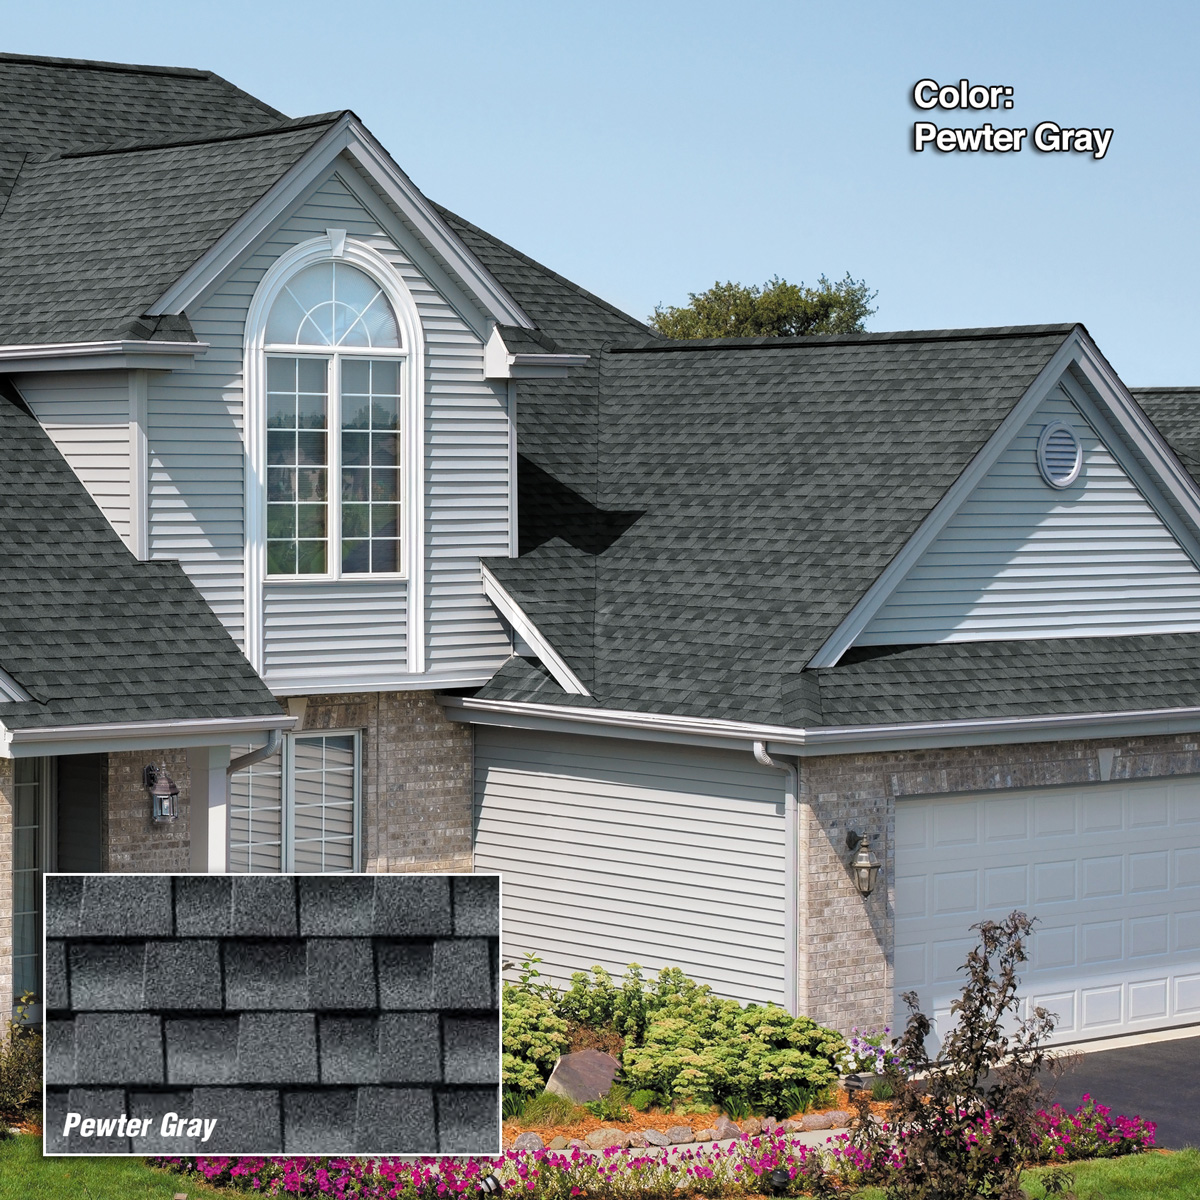 Pewter Gray Shadow Ridge Roofing